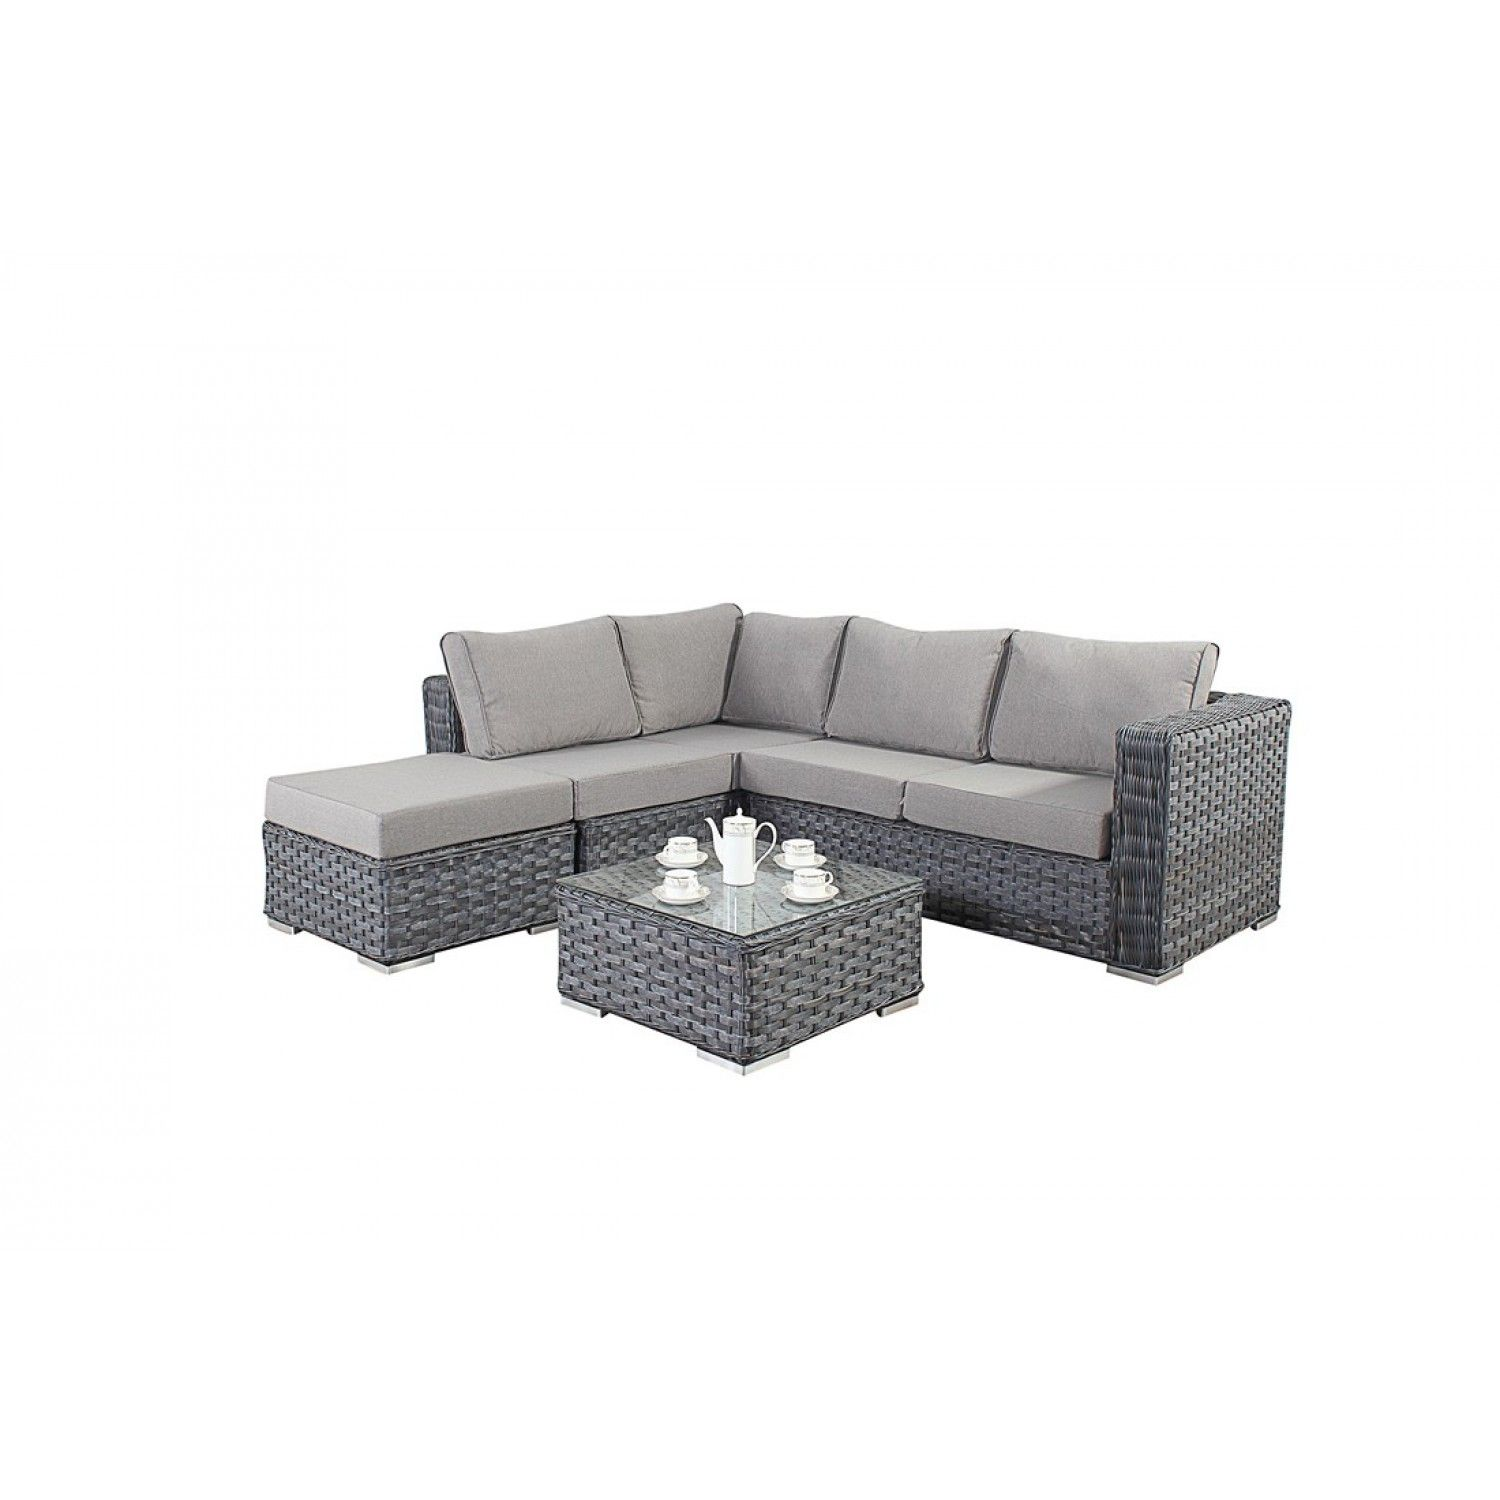 Garden Sofa Two Seater Bonsoni Small Corner Sofa Colour Grey Consists Of Two Modular